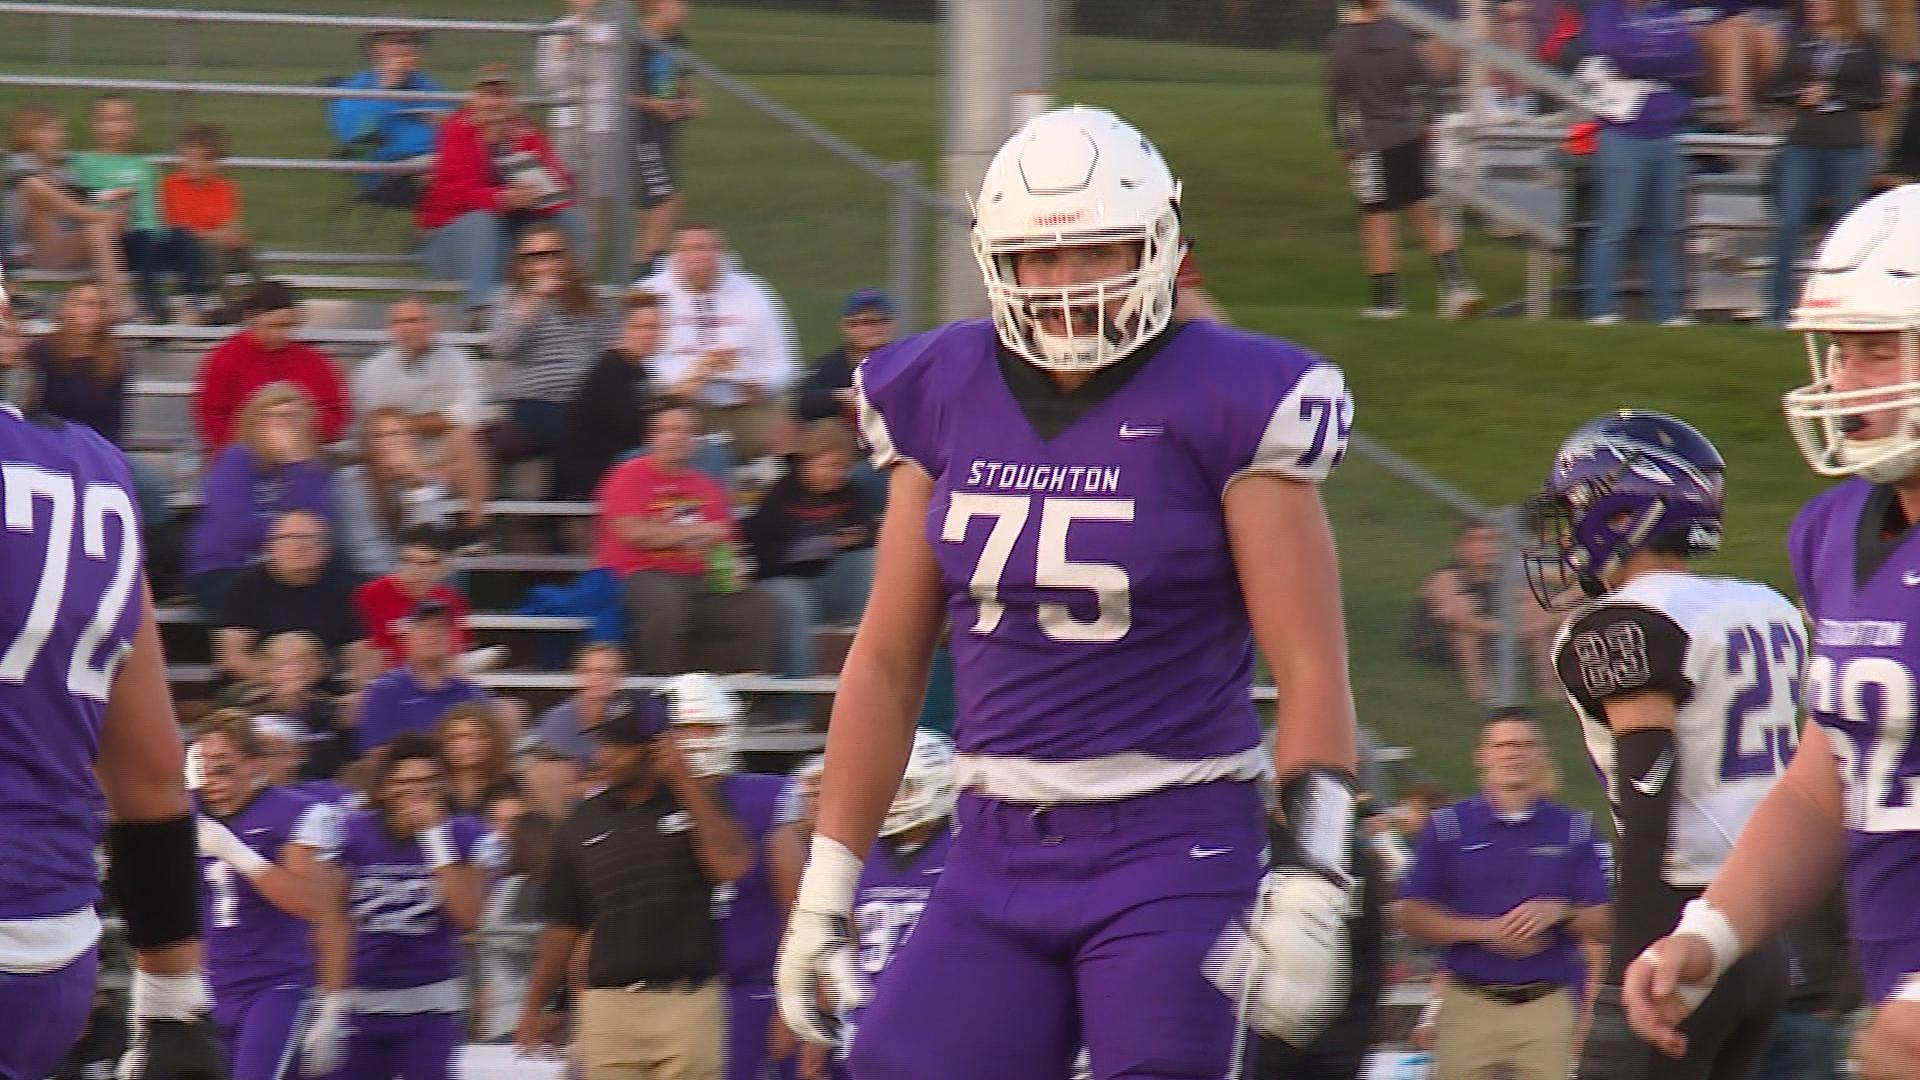 Stoughton OL receives All-American Bowl Jersey